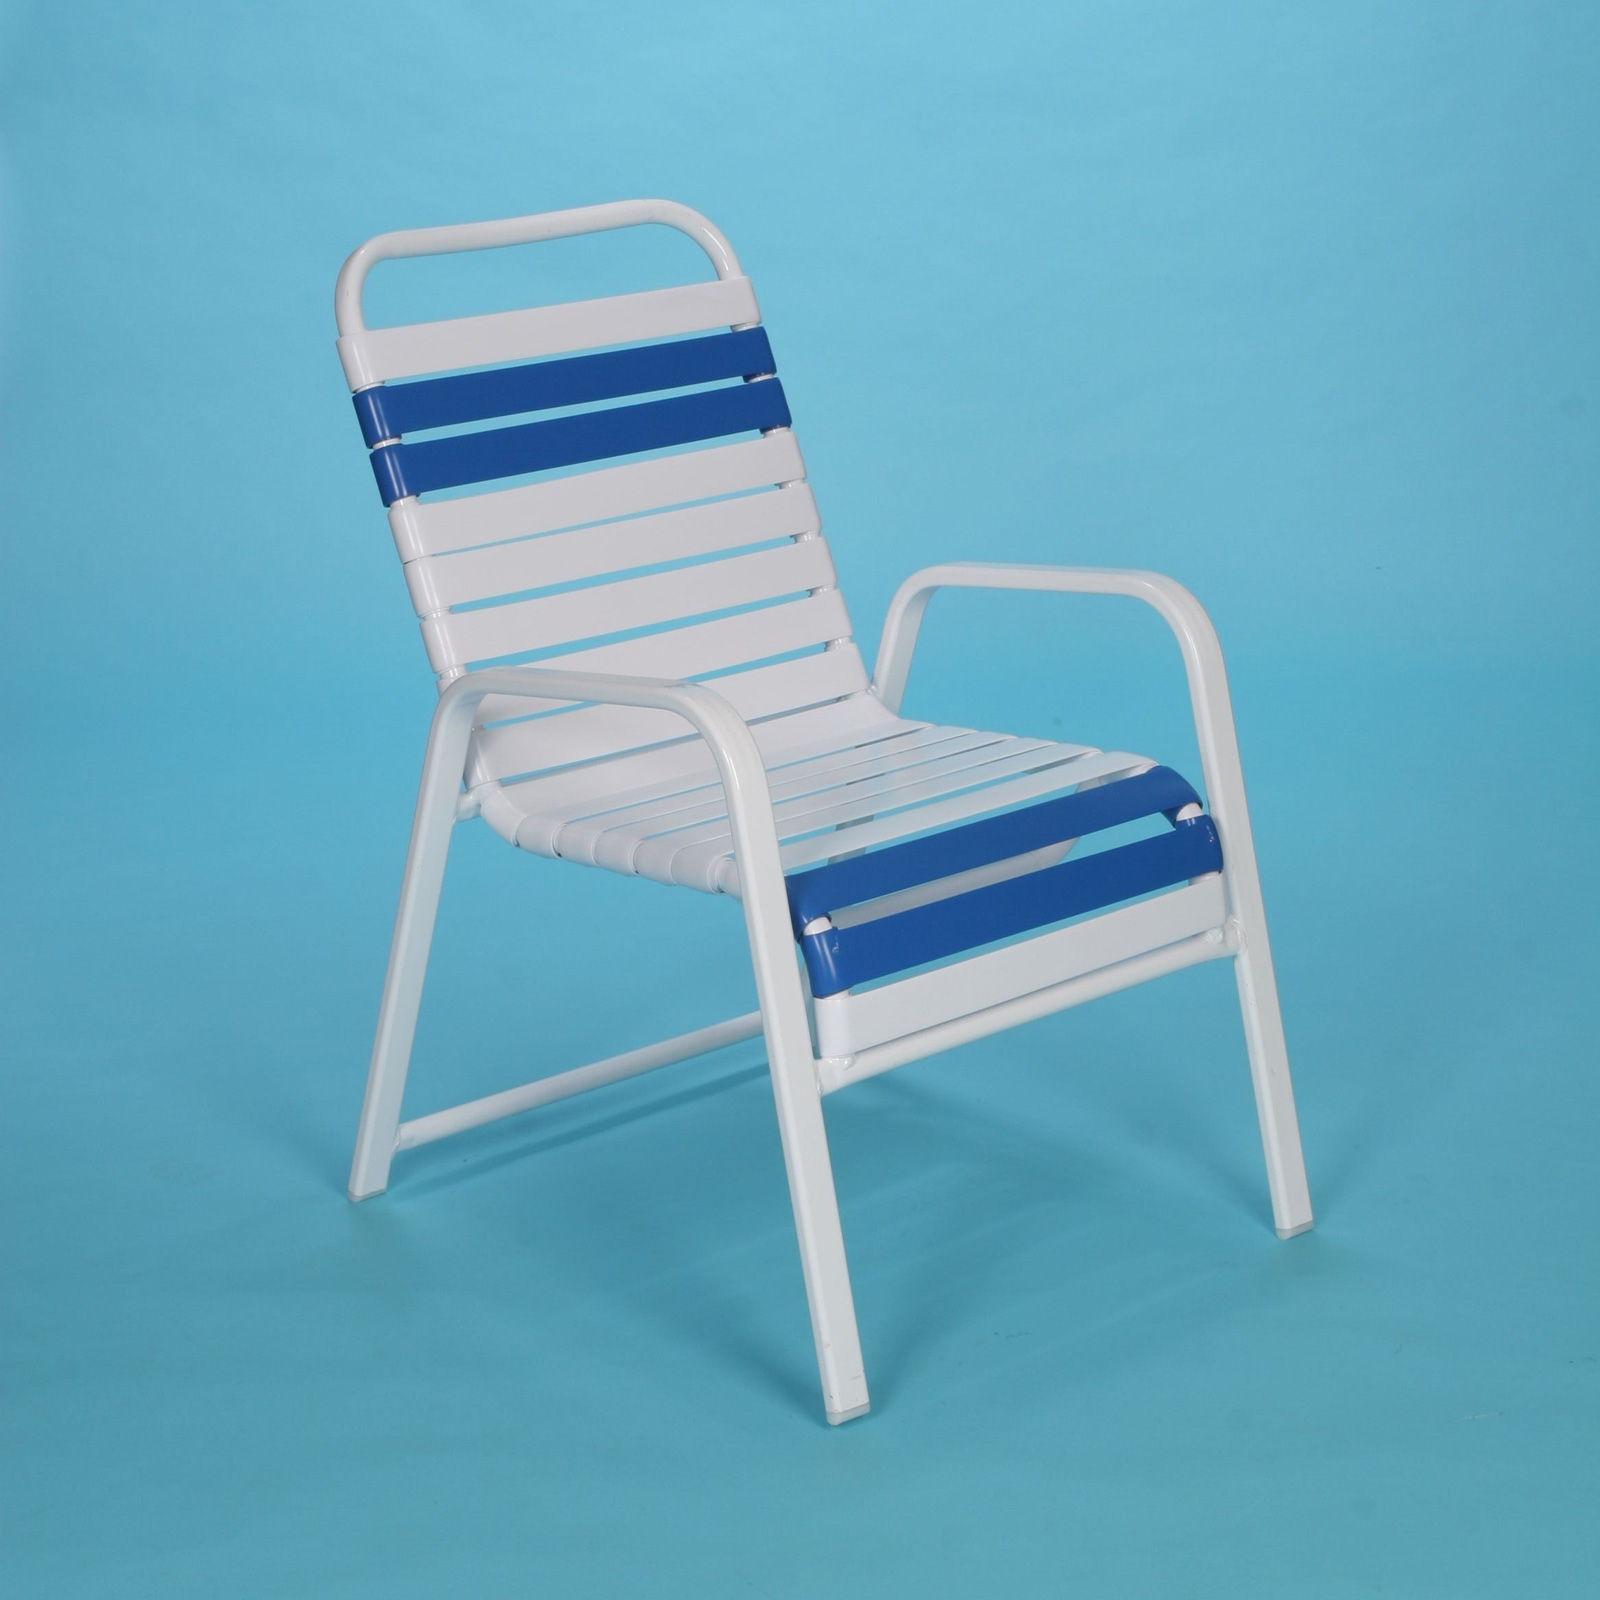 Commercial Grade Chair Patio Furniture By Dr Strap